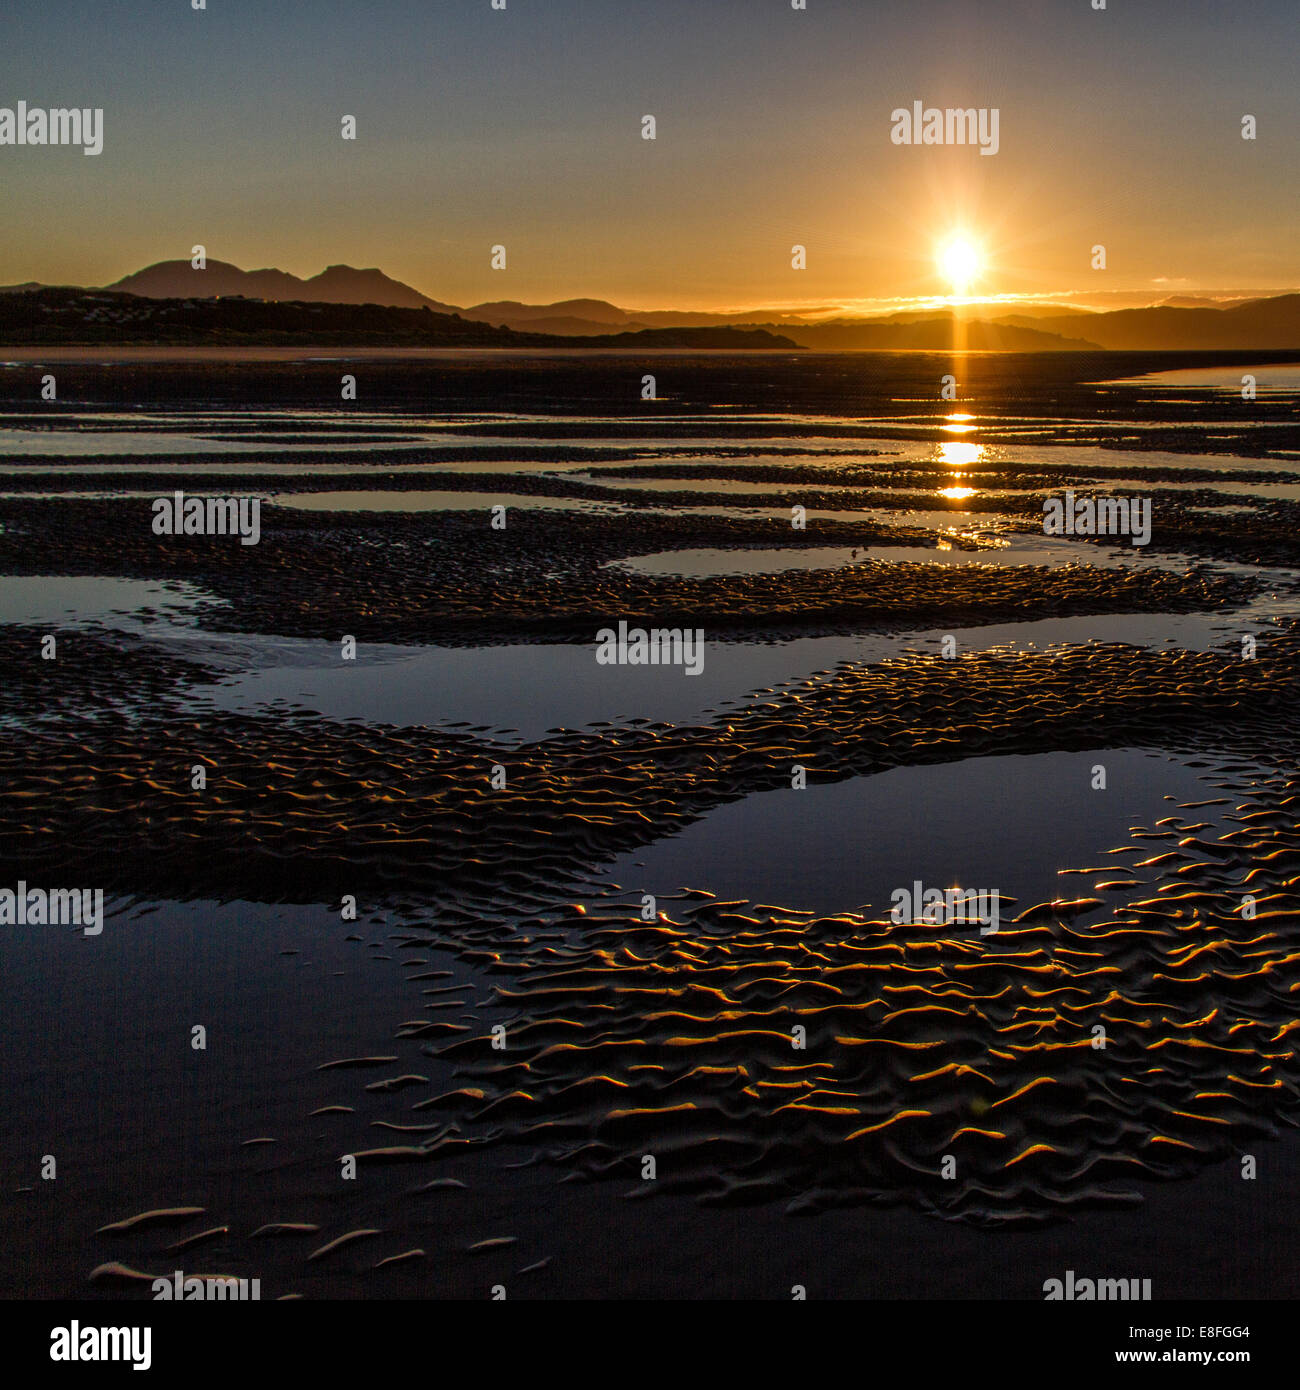 Landscape with sun reflected in puddles - Stock Image